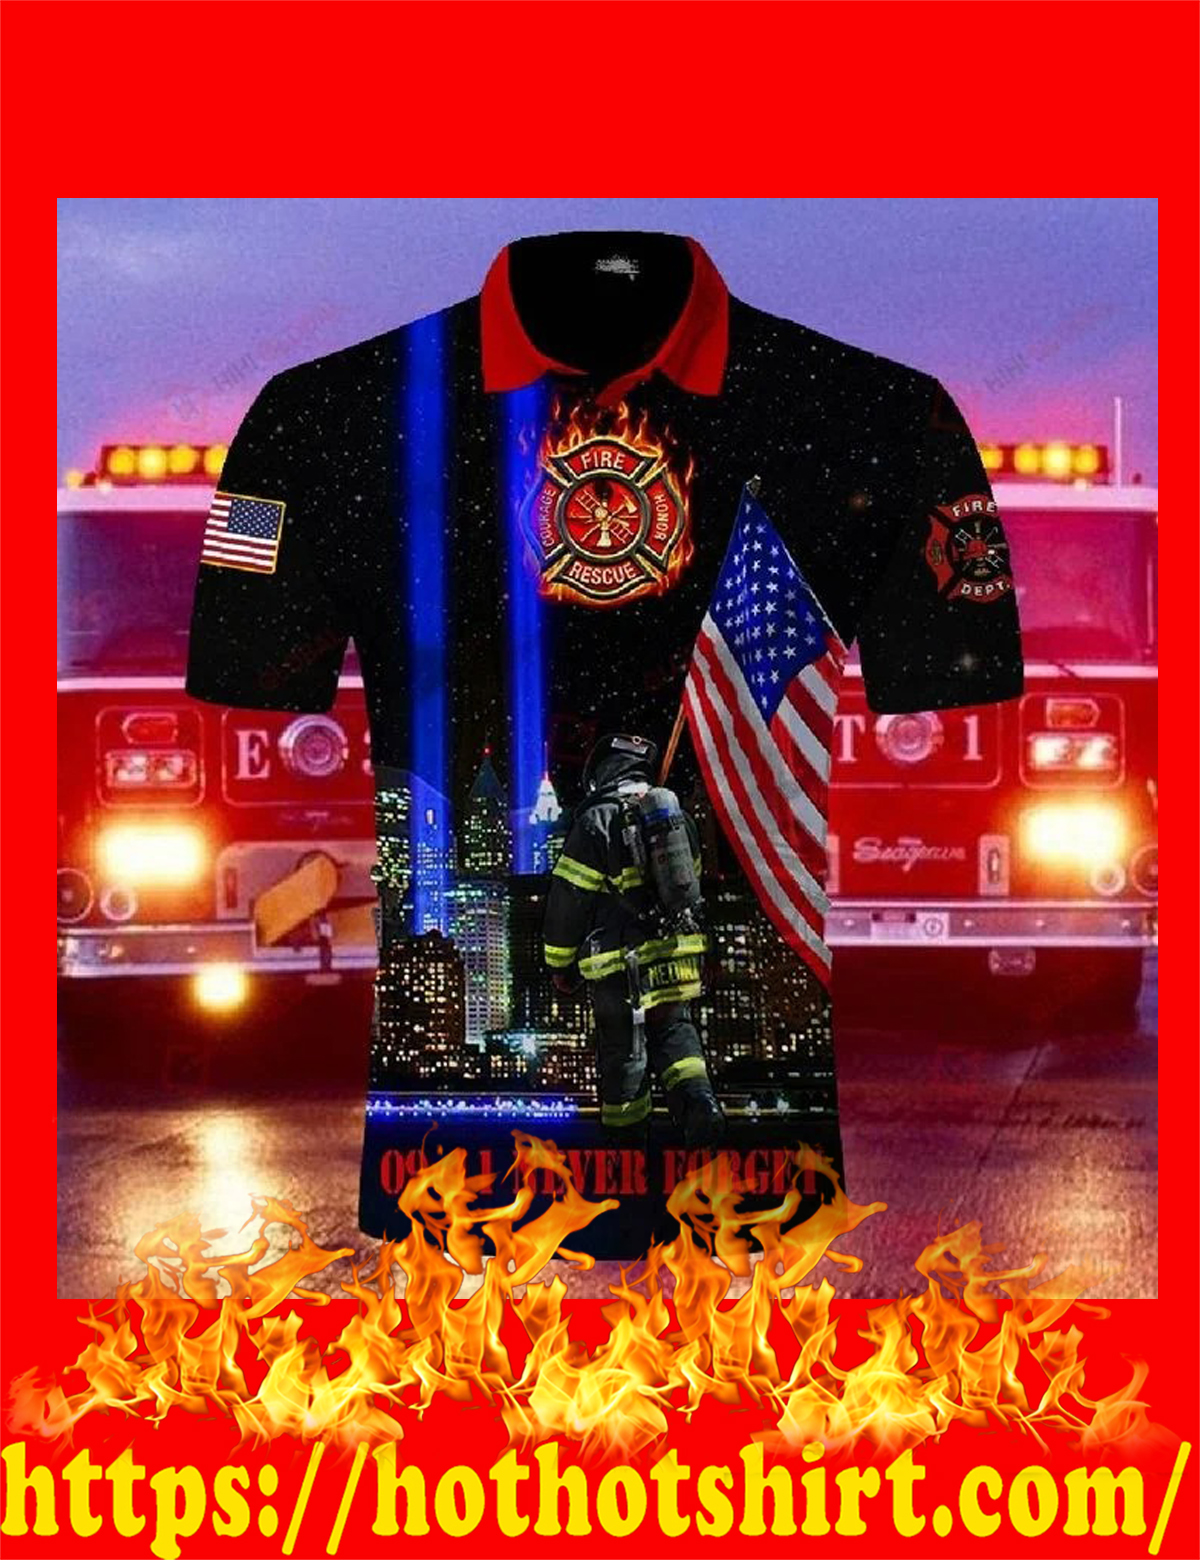 US firefighters 09 11 never forget all over printed polo shirt